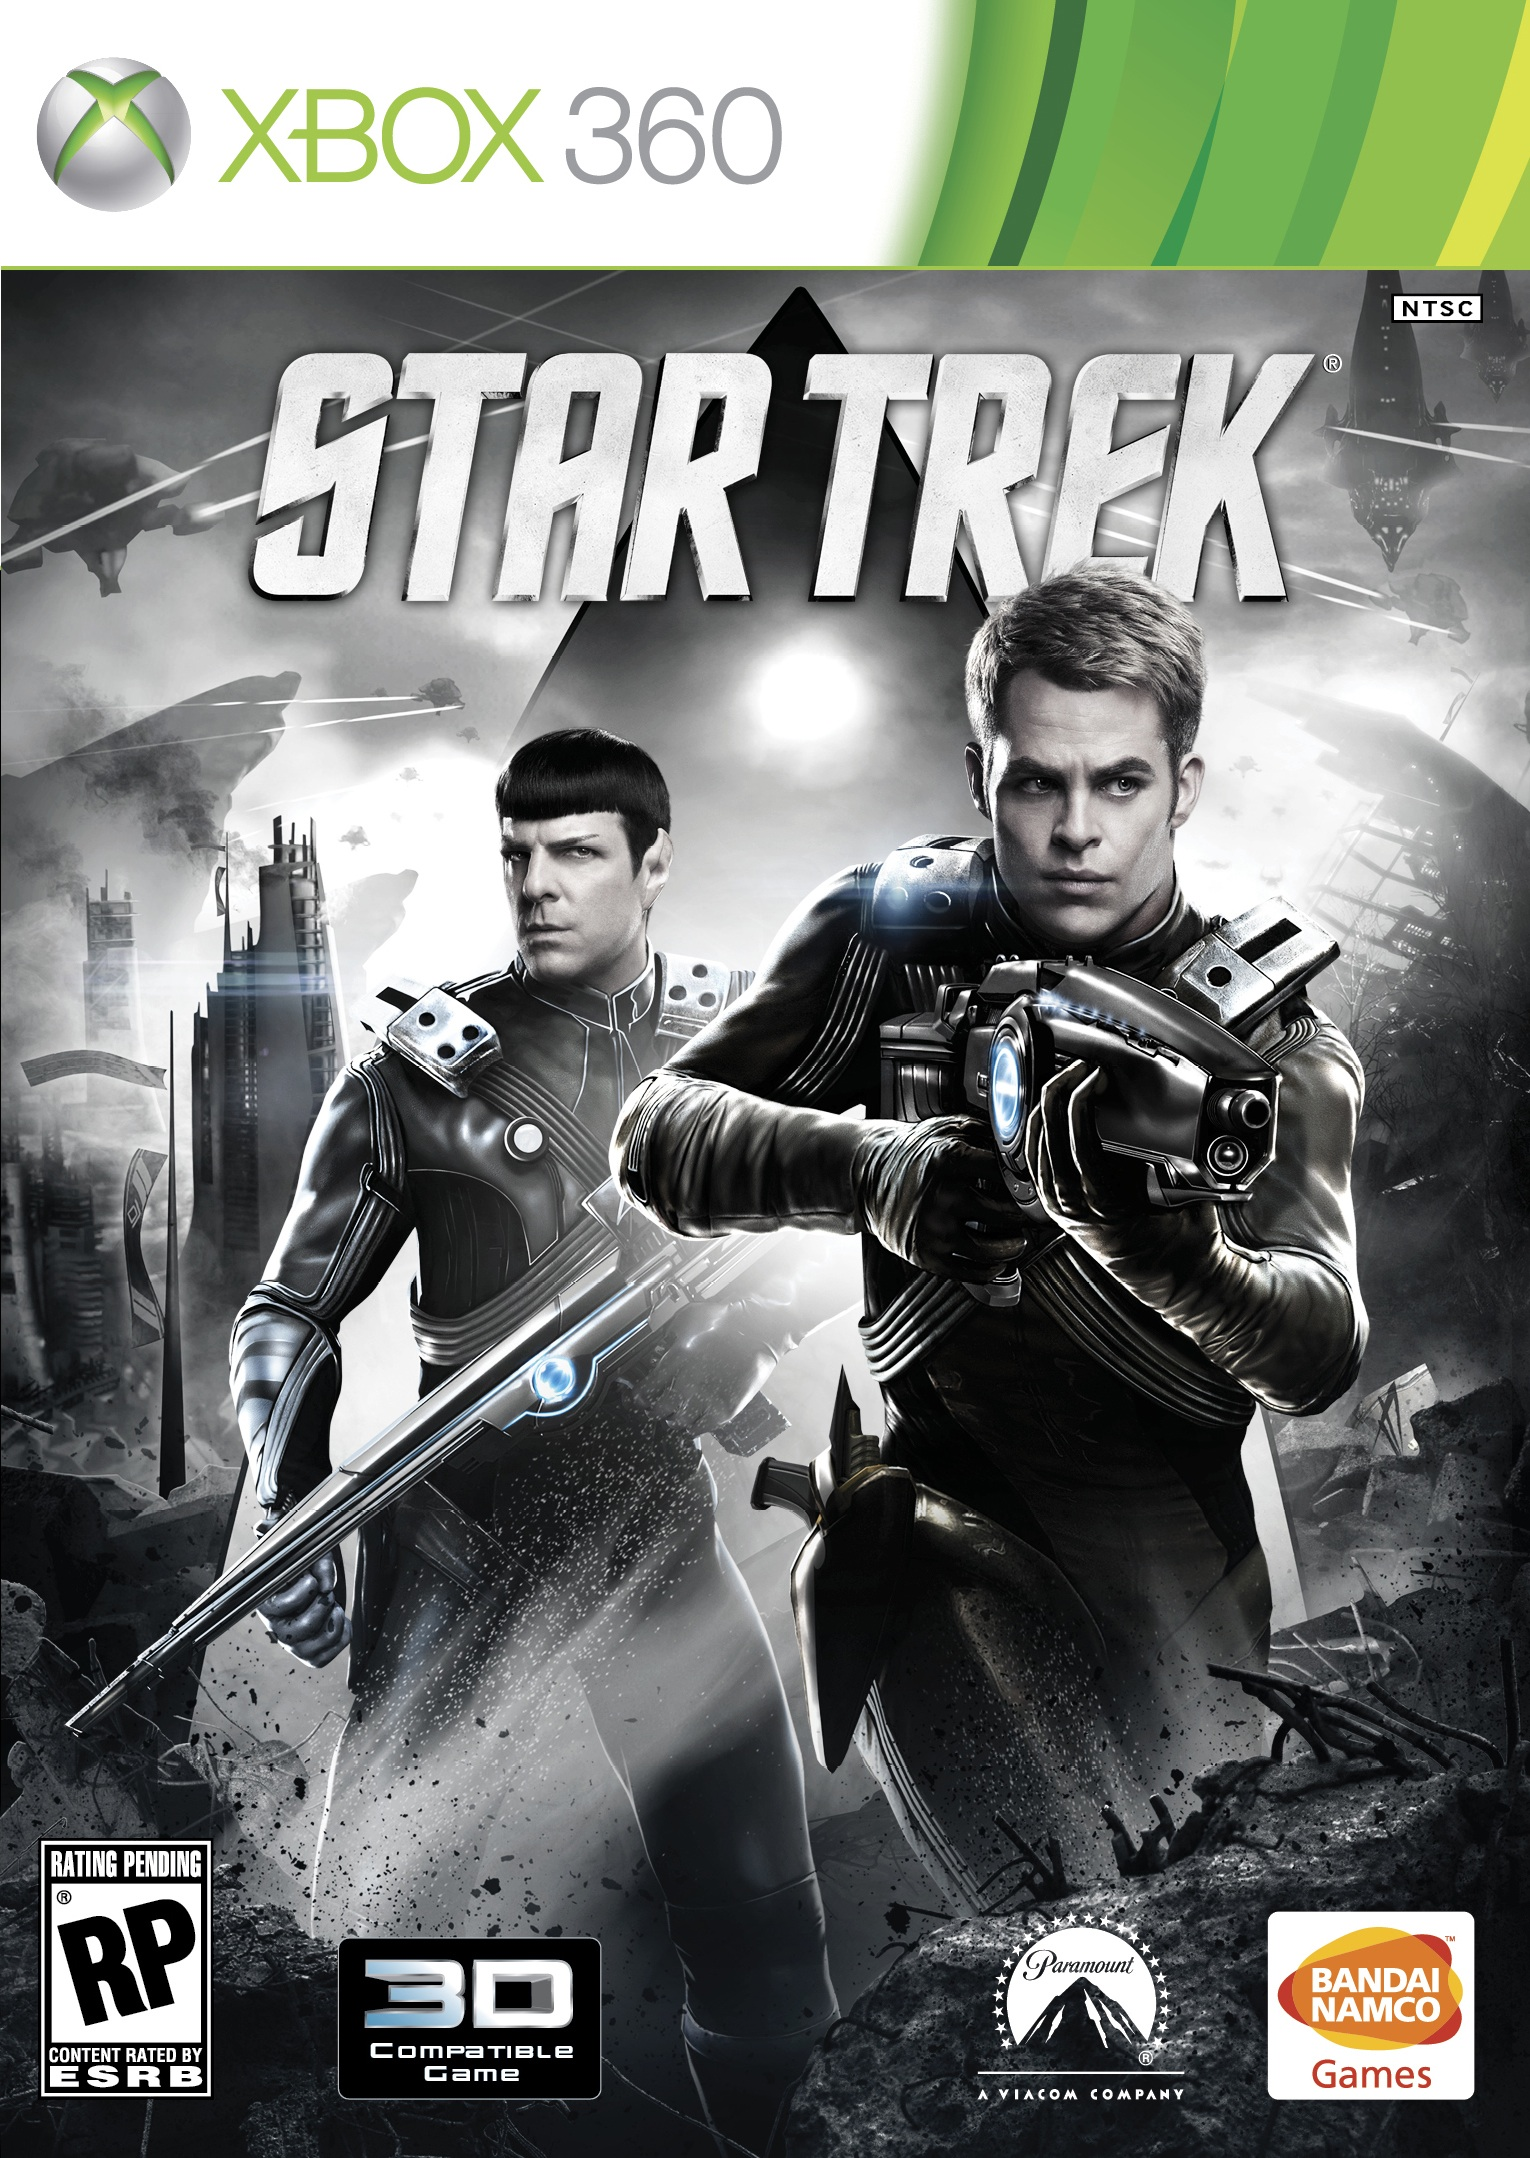 Star_Trek_Front_of_Box_-_XBox